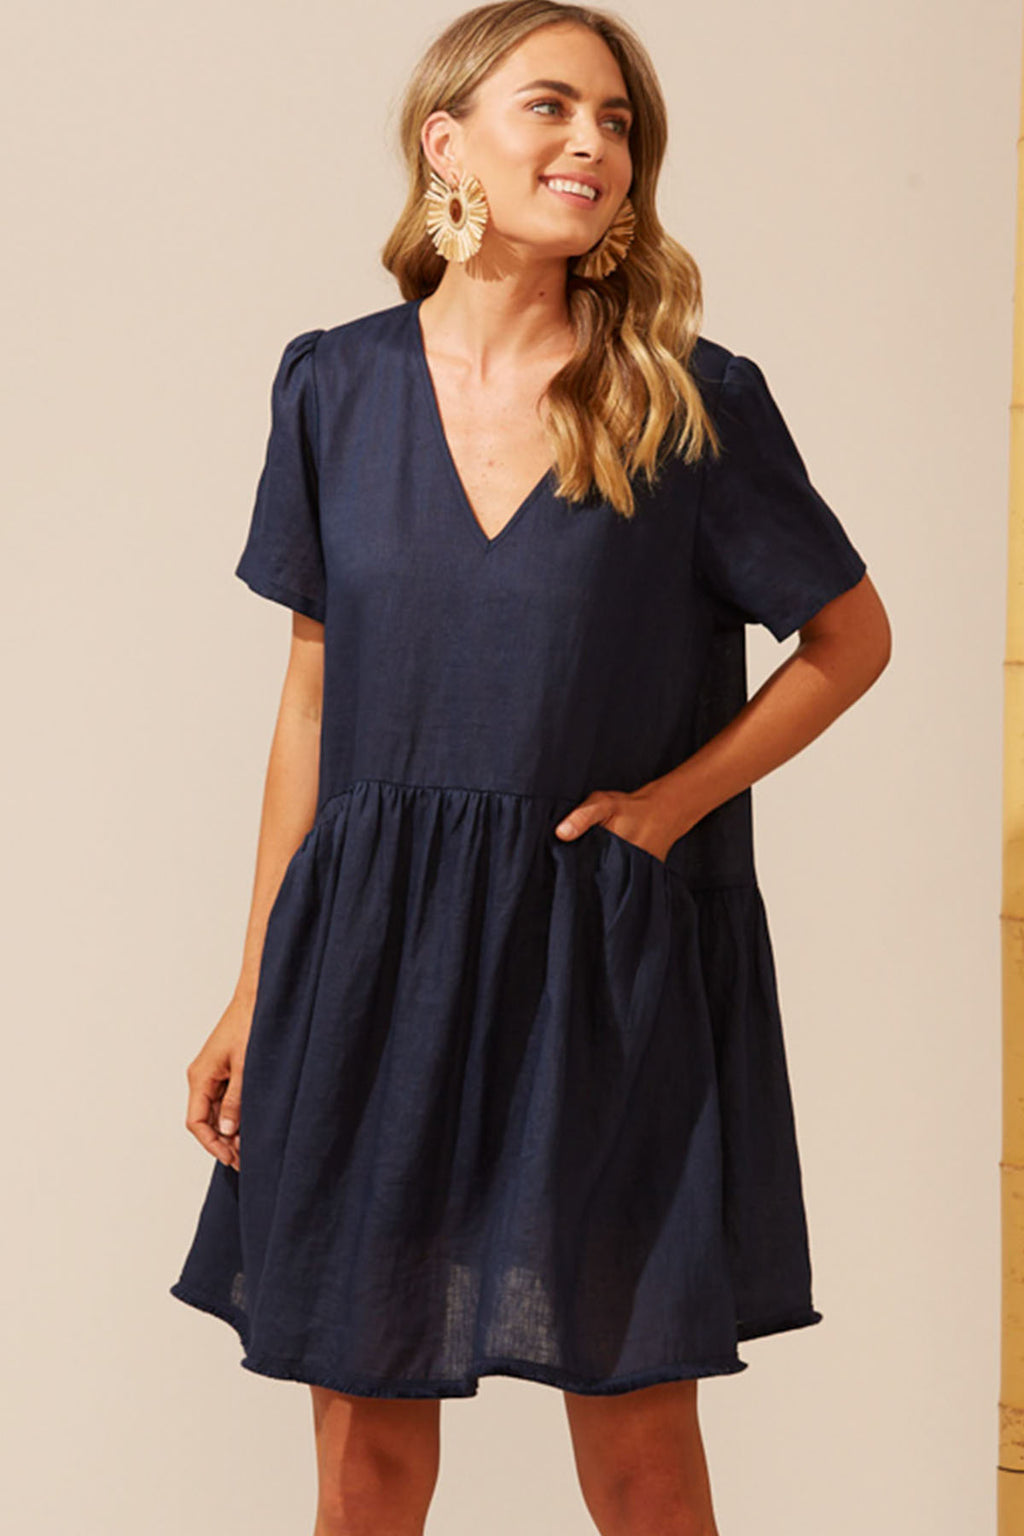 Martinique Dress - Navy - The Bohemian Corner